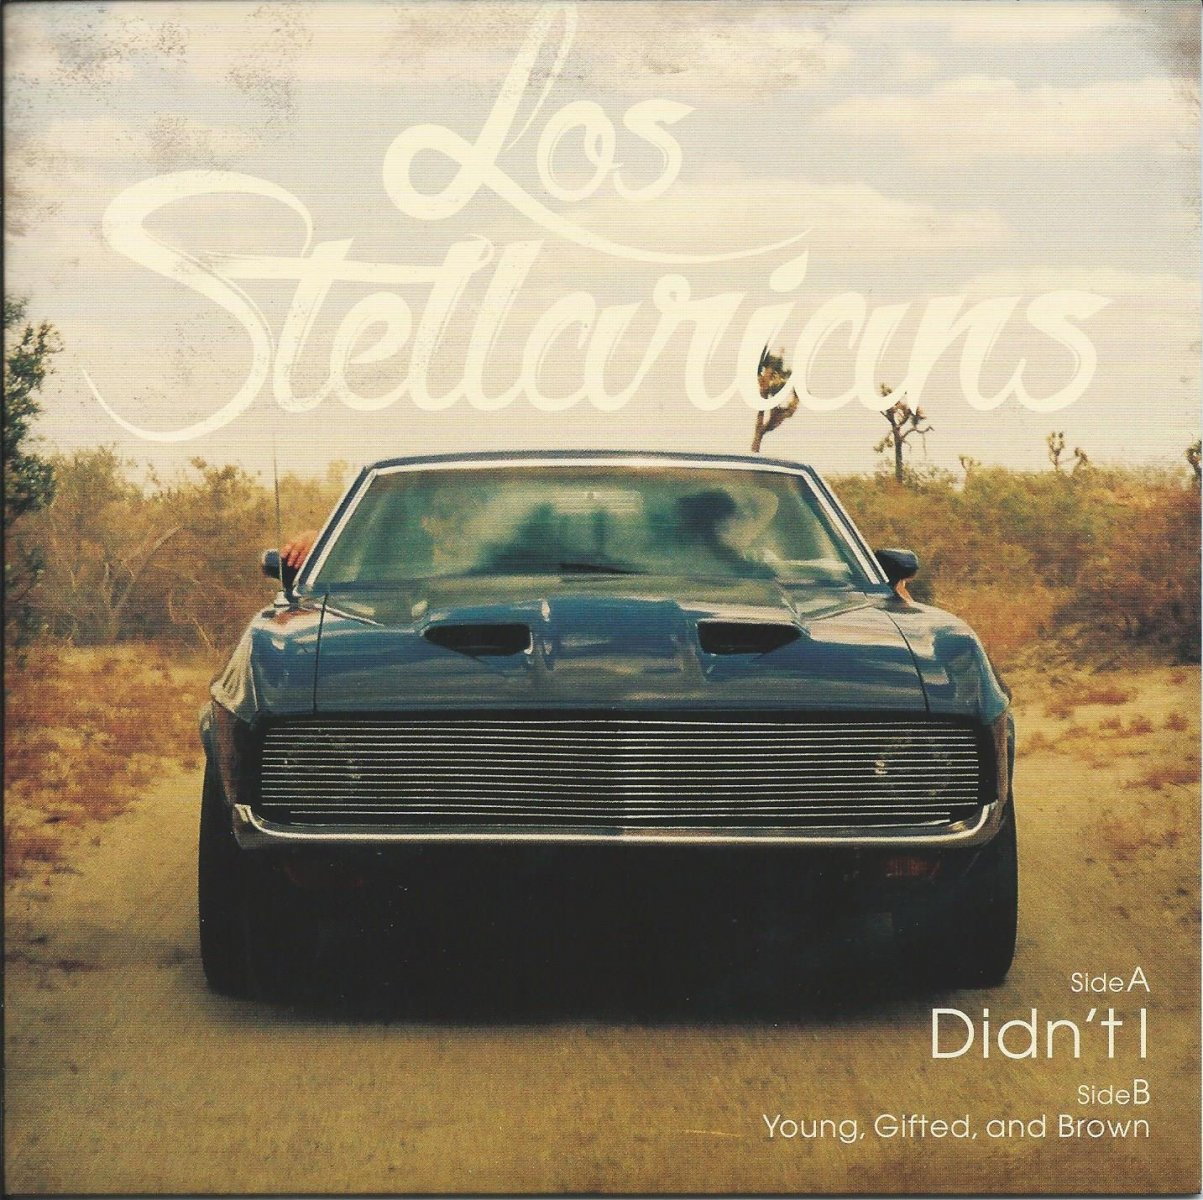 LOS STELLARIANS / DIDN'T I / YOUNG GIFTED AND BROWN (7